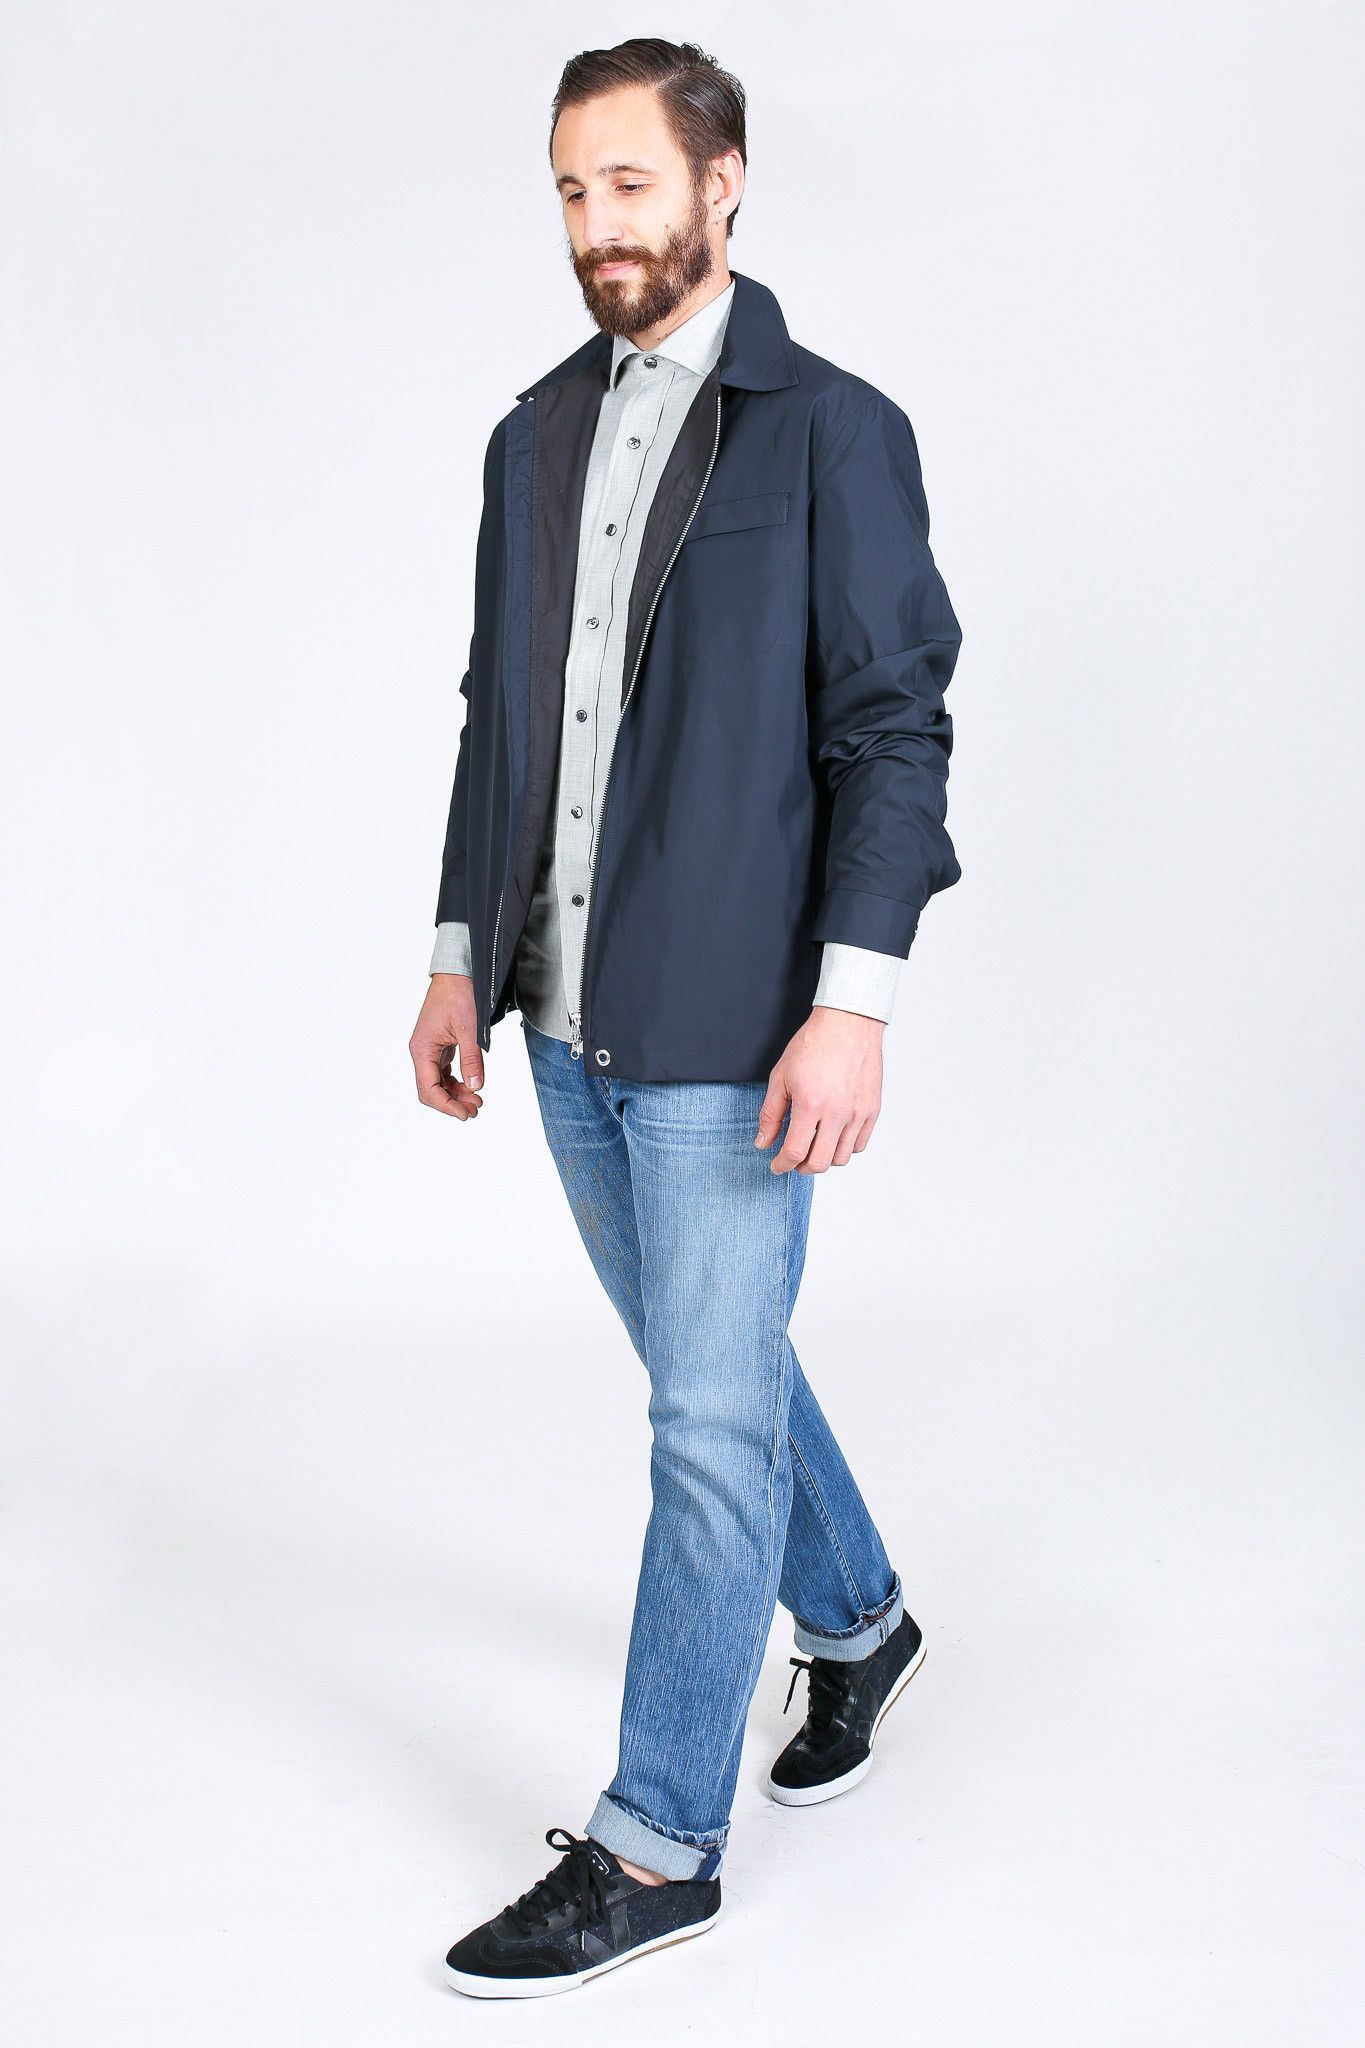 3550db155e0 Alexander in Bodie Wash | Just In at V&V | Raleigh denim, Denim ...